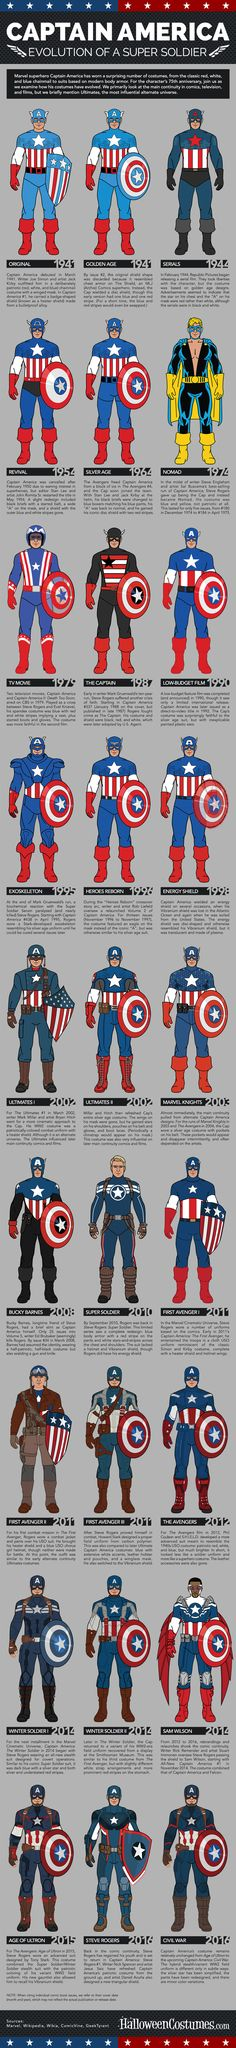 Captain America: Evolution of a Super Soldier Infographic - see all of Captain America costumes from 1941 to today!